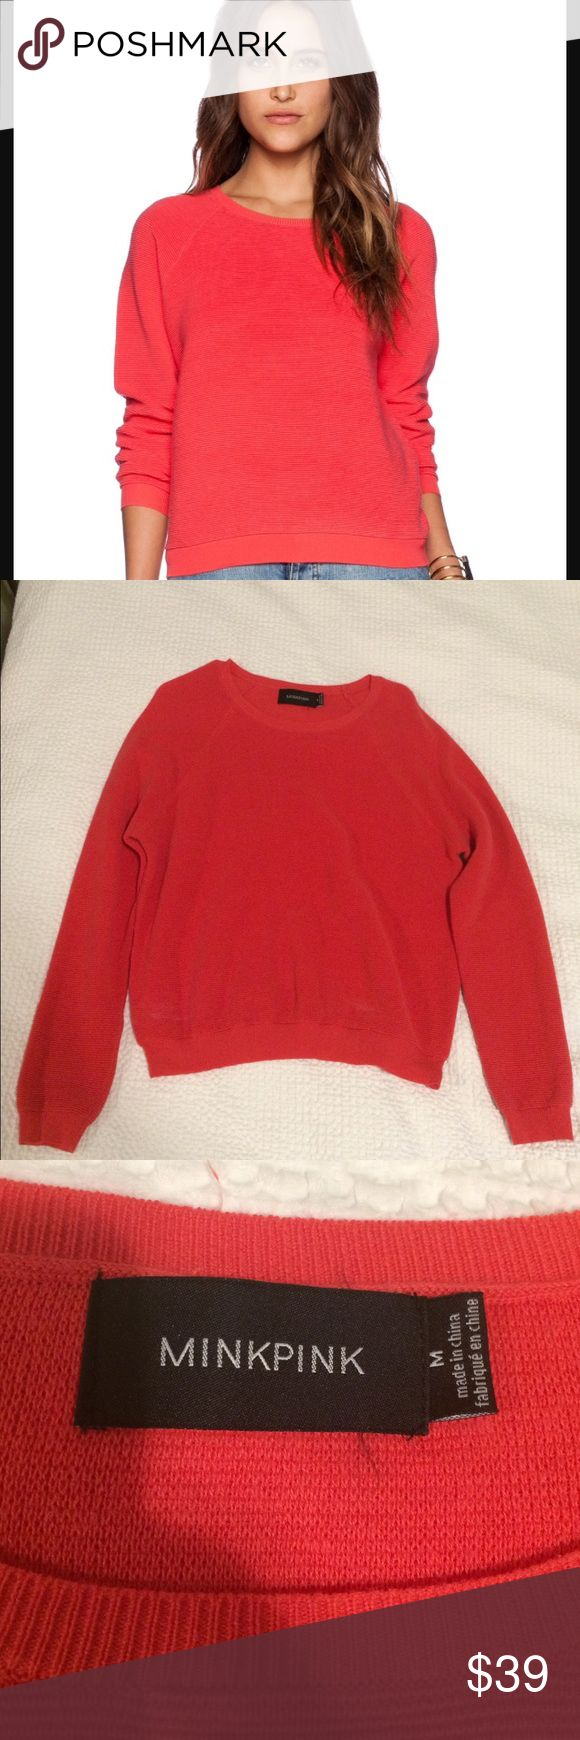 Ribbed Crew Neck MinkPink Sweater Strawberry color. Very soft. Worn two or three times. No stains or scratches. MINKPINK Sweaters Crew & Scoop Necks